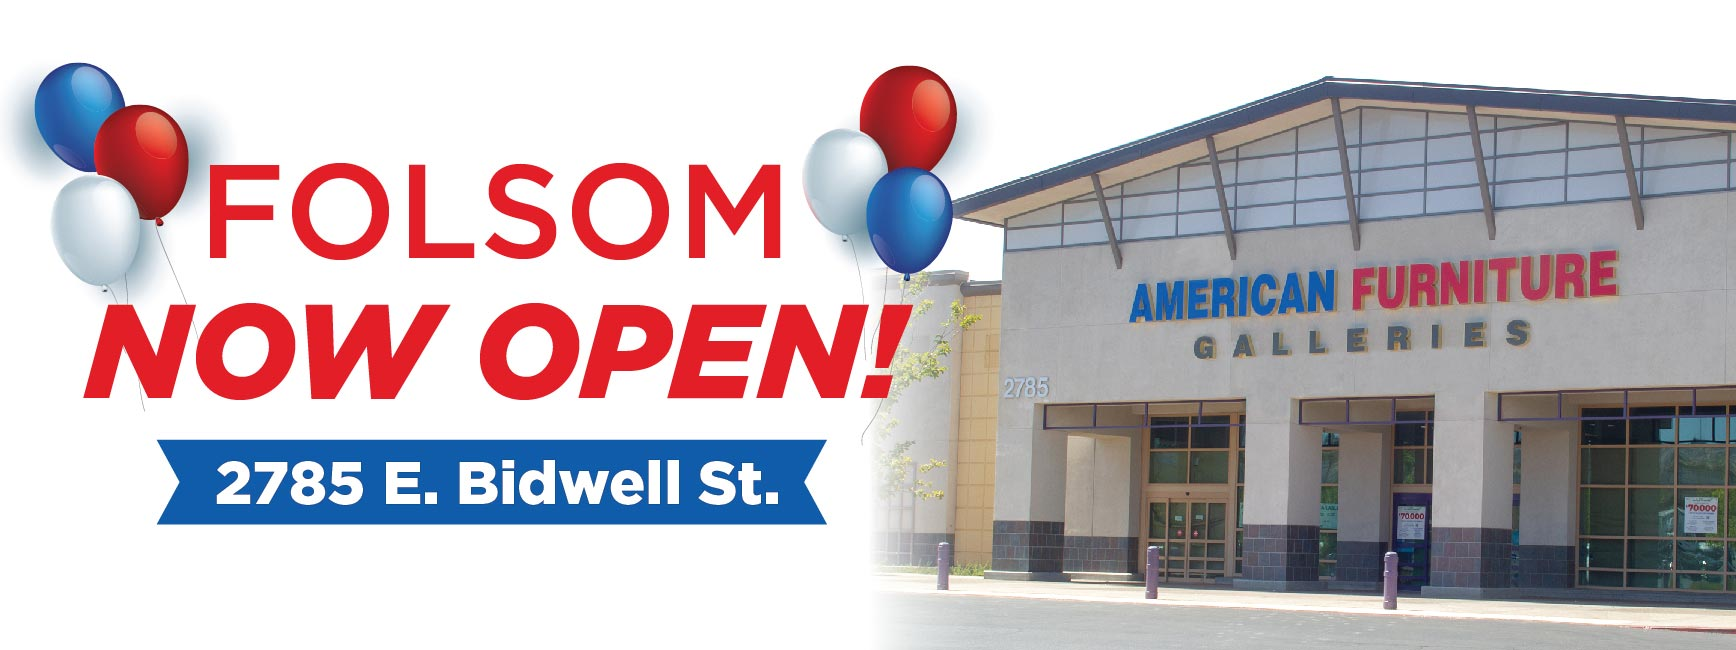 Folsom Now Open